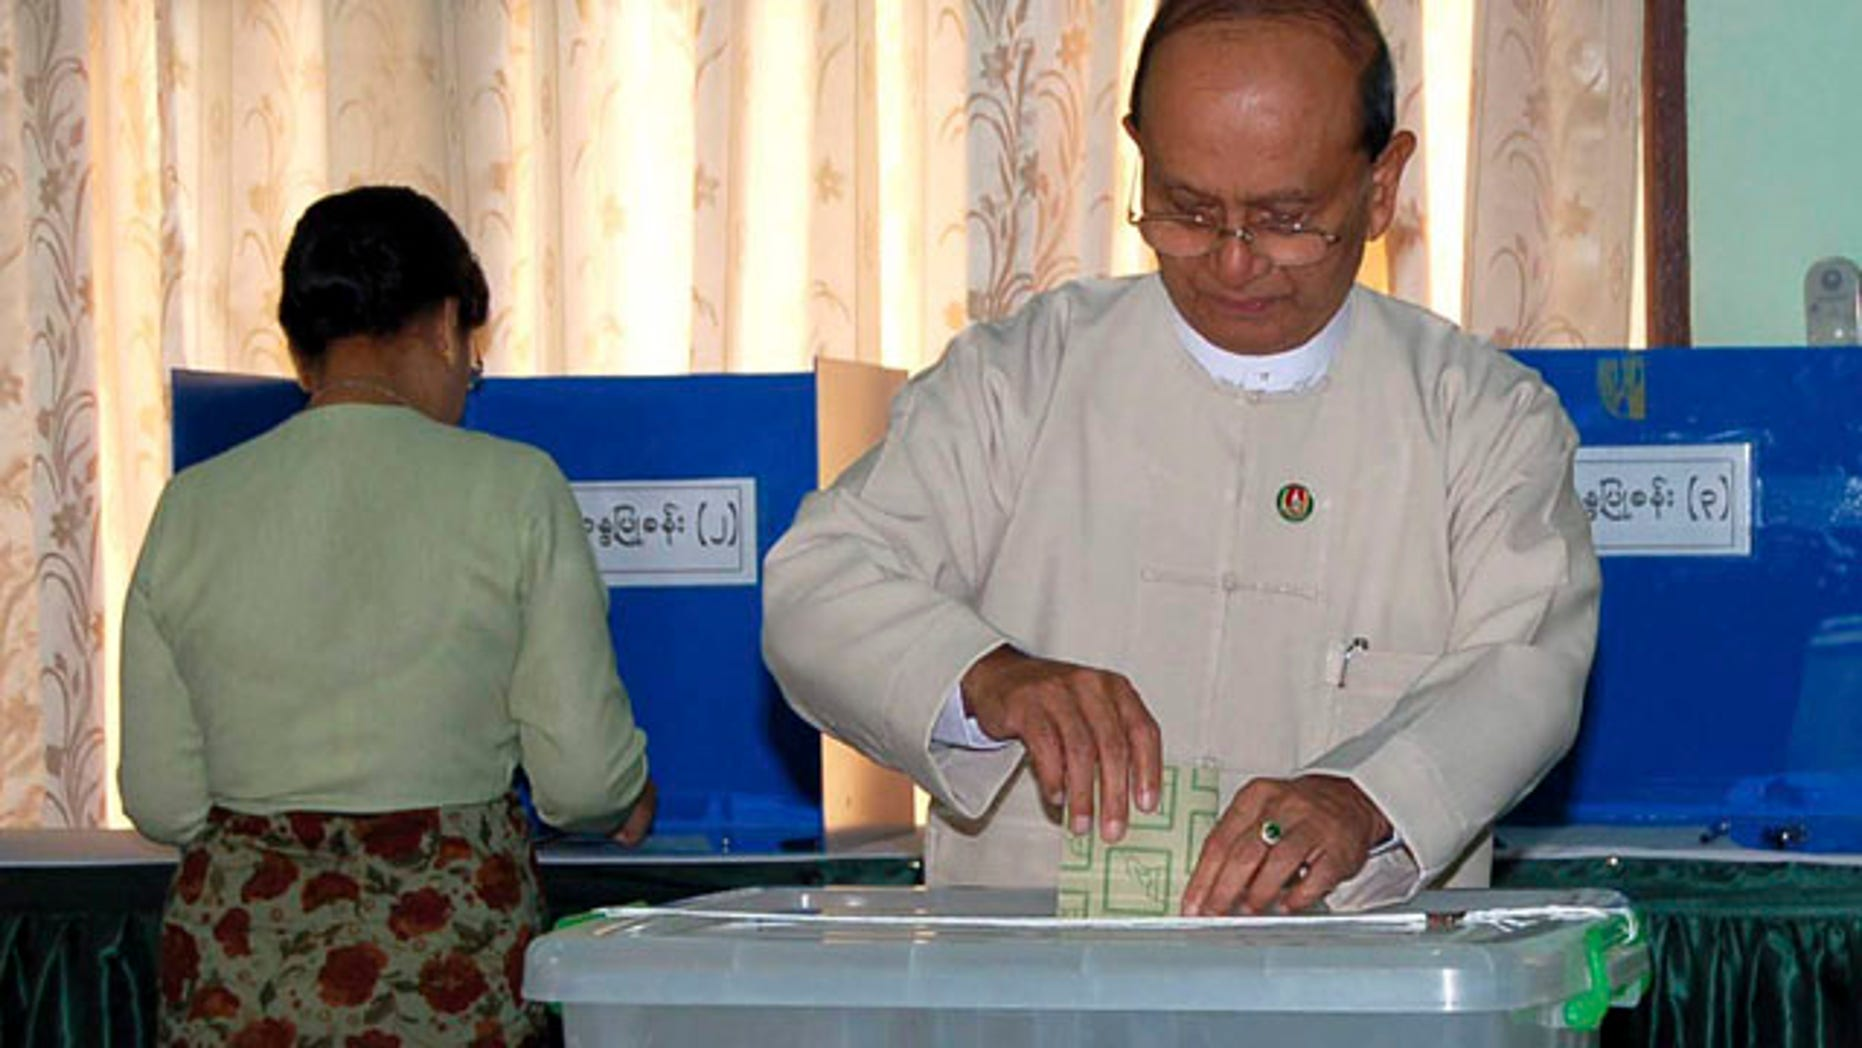 Nov. 7: Myanmar's Prime Minister Thein Sein casts his ballot for the elections in Naypyitaw, Myanmar's administrative capital.